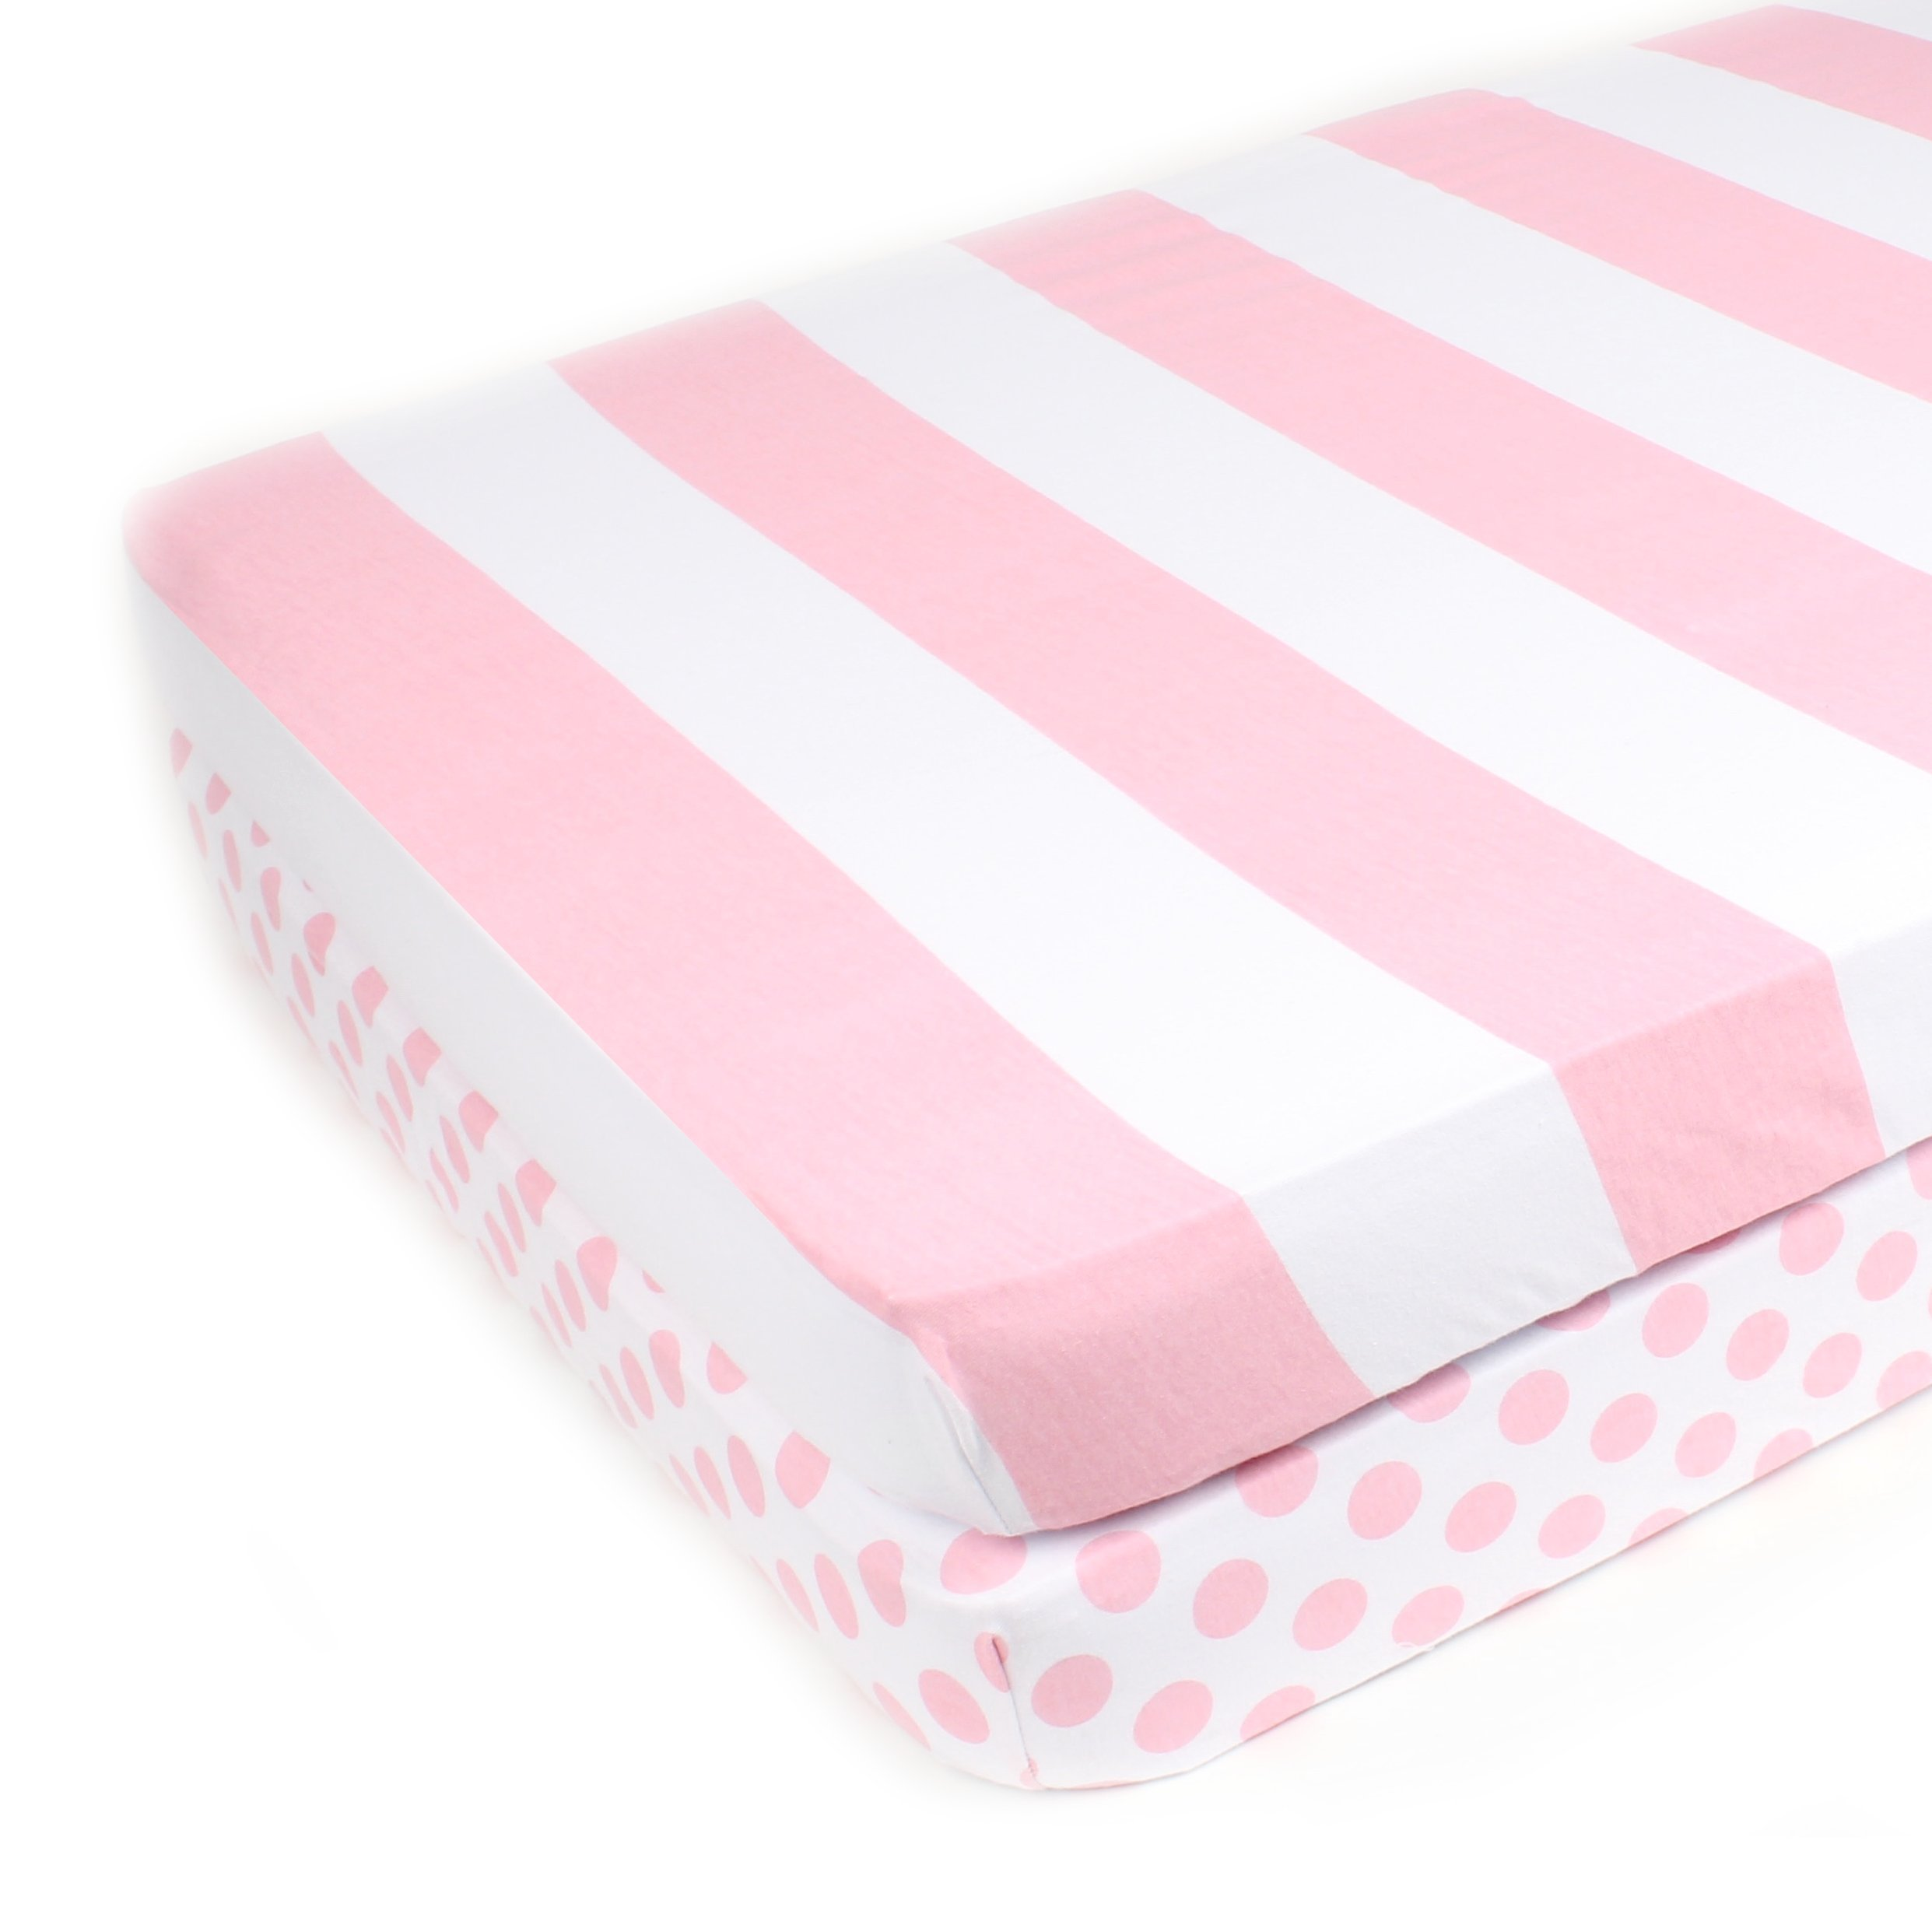 Pack N Play Playard Sheet Set - 2 Pack - Fitted, Soft Jersey Cotton Portable Crib Sheet - Baby Bedding in Pink Stripes & Polka Dots by Mumby